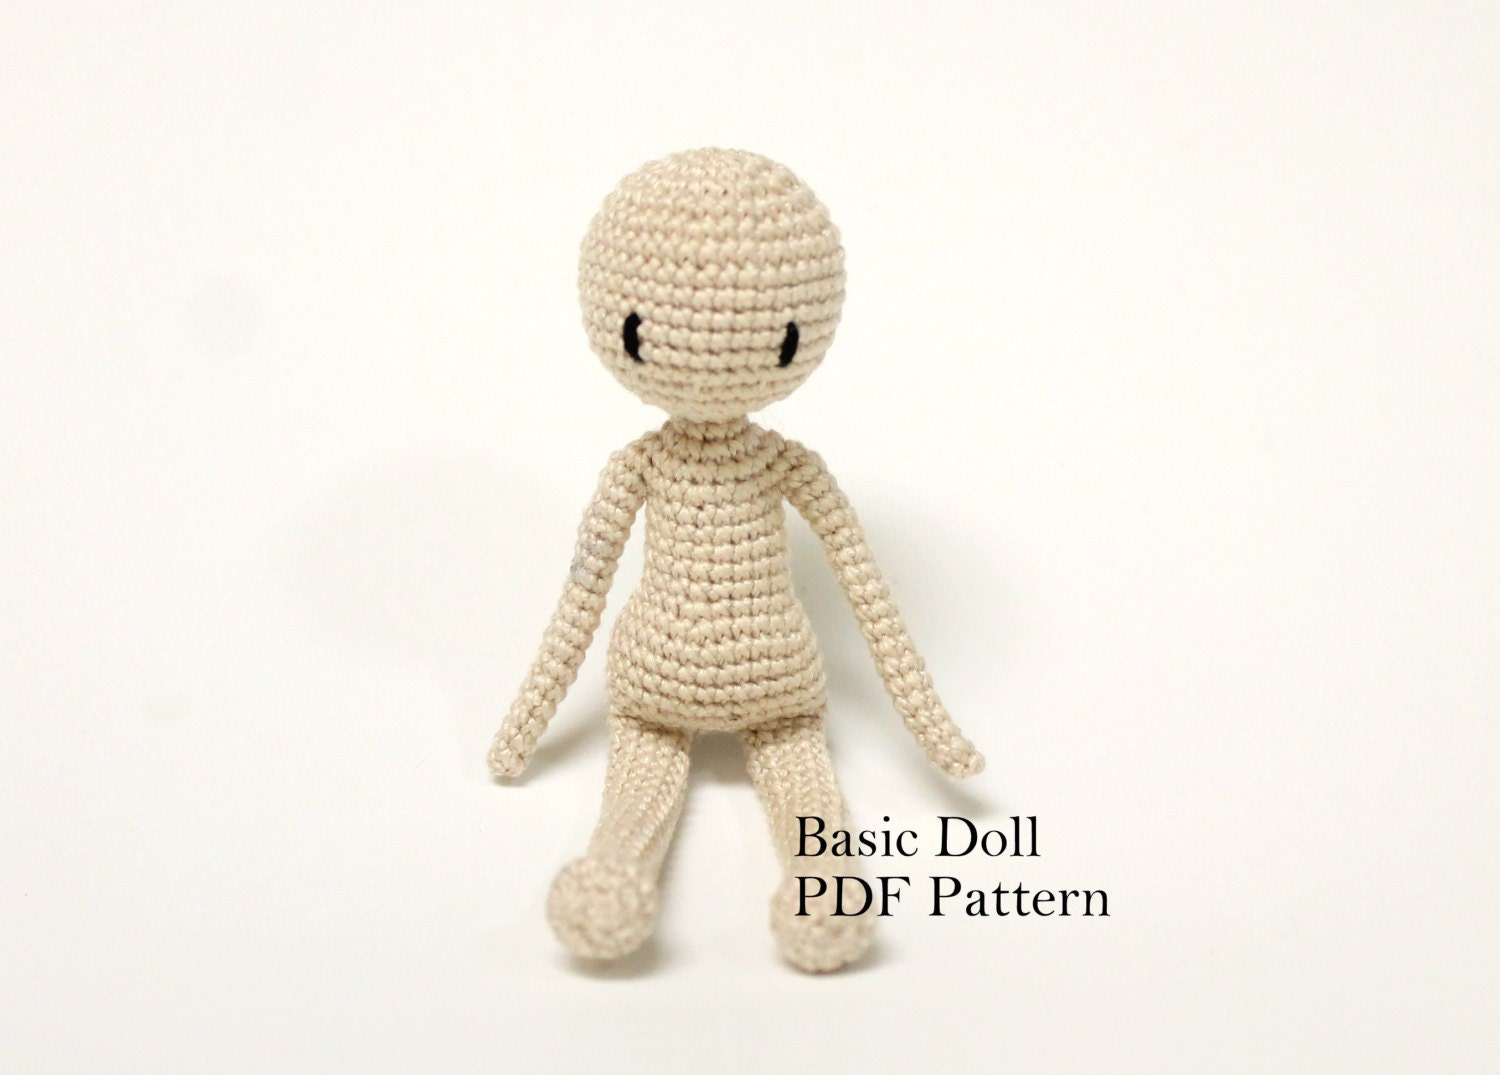 Amigurumi Crochet Doll Patterns : Amigurumi Doll Basic Doll Pattern Crochet by PinkMouseBoutique